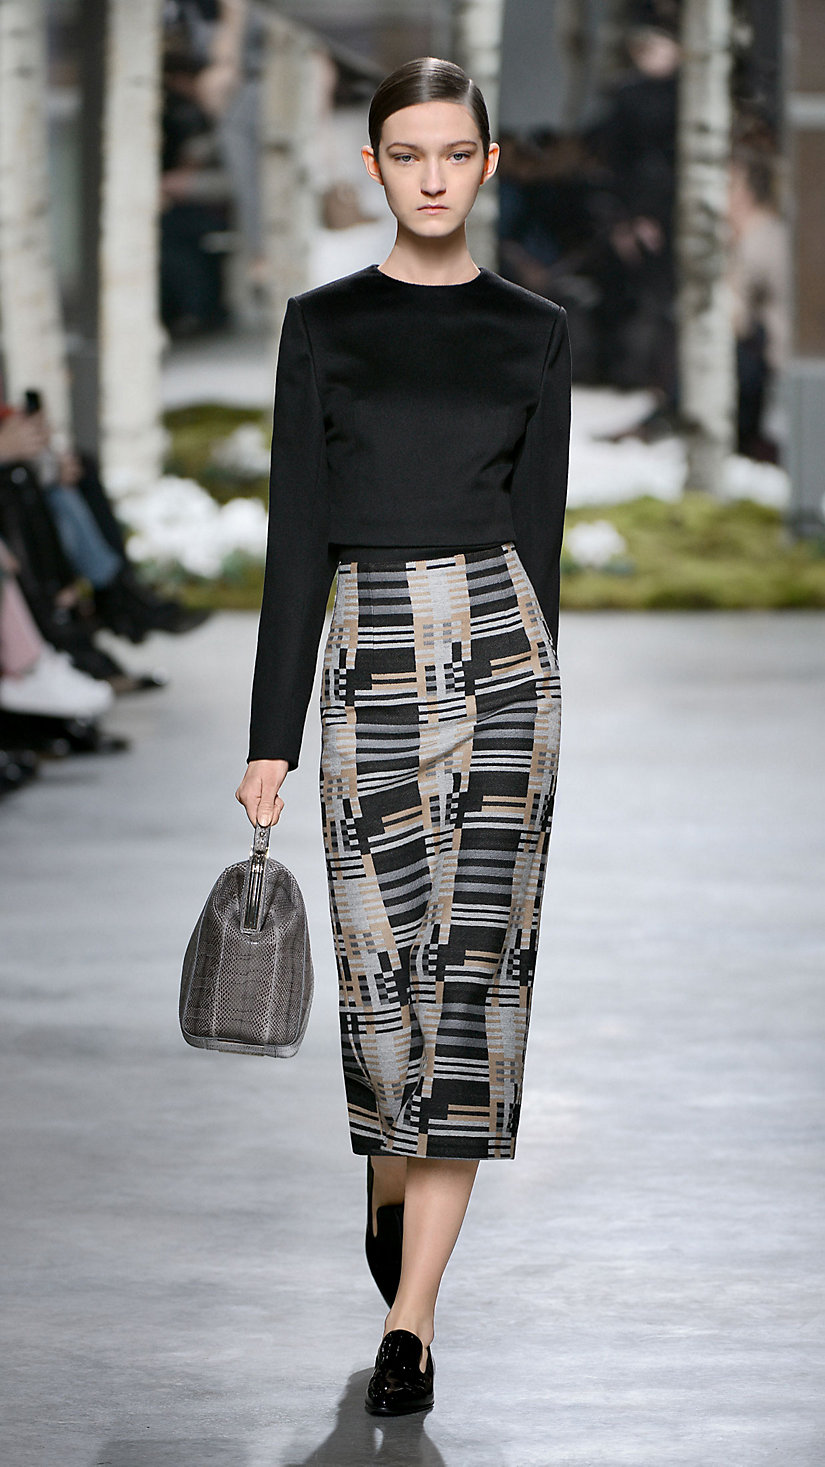 A Bauhaus-inspired look on the Fall/Winter 2014 runway at New York Fashion Week